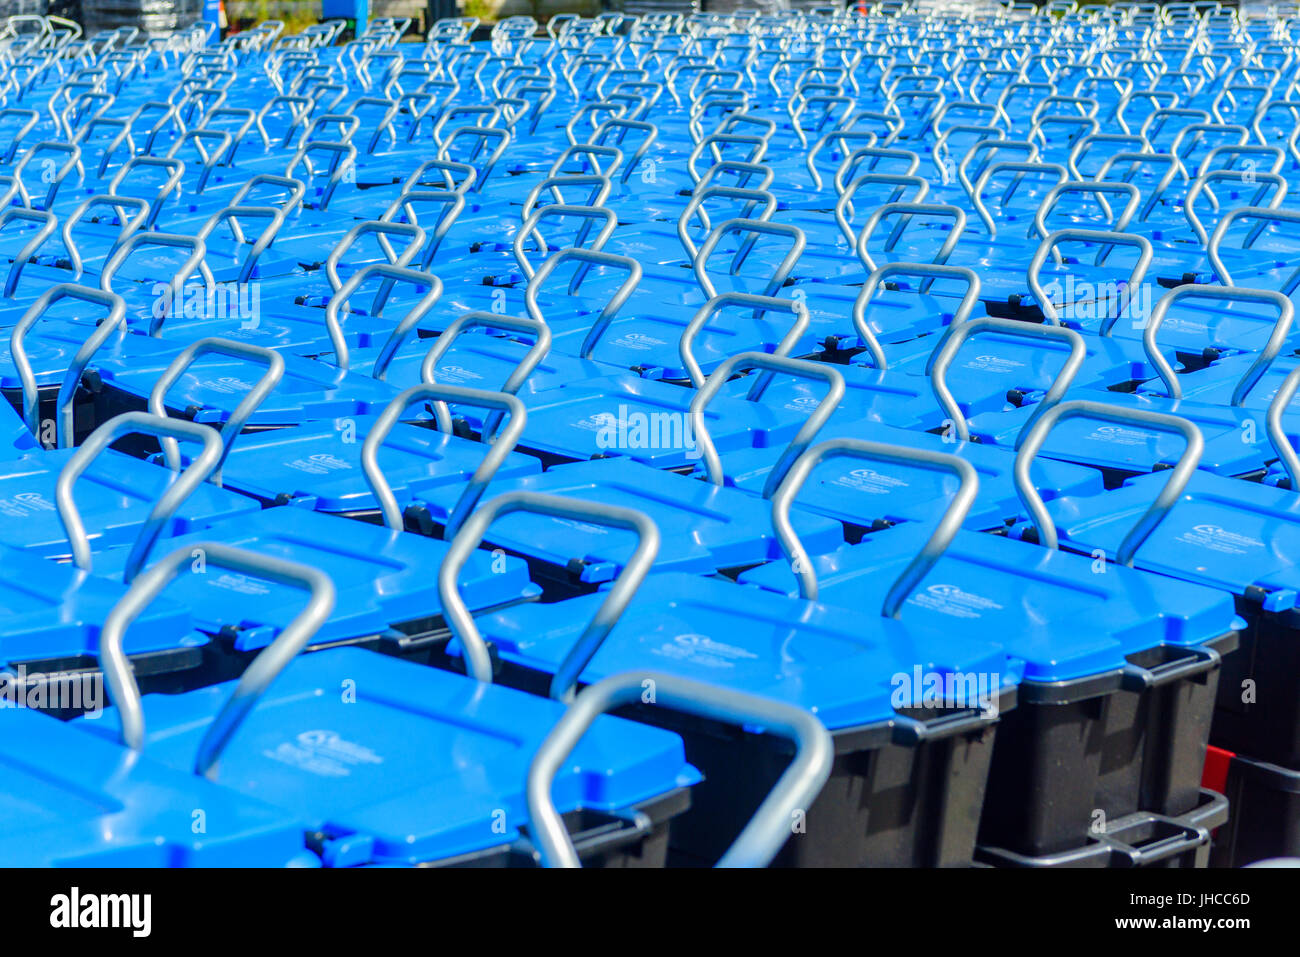 Recycling wheelie bins with three compartments at a council recycling centre, ready to be distributed to local homes. - Stock Image